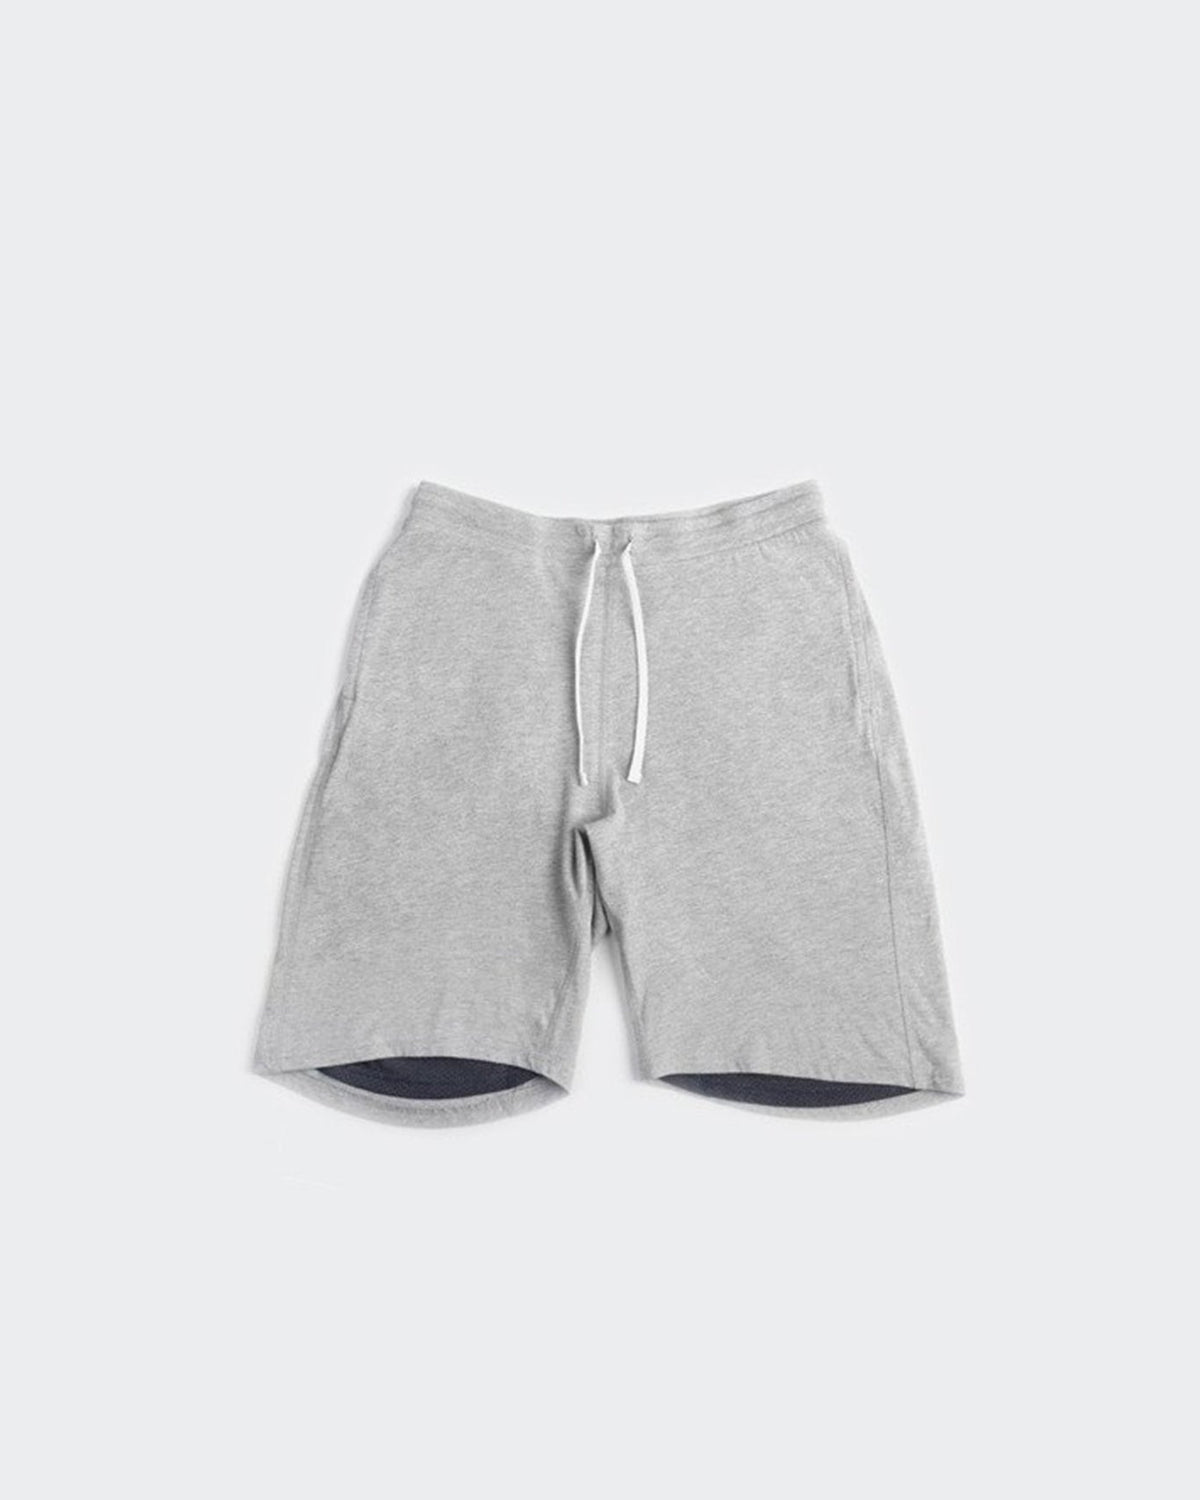 League Short - Reversible